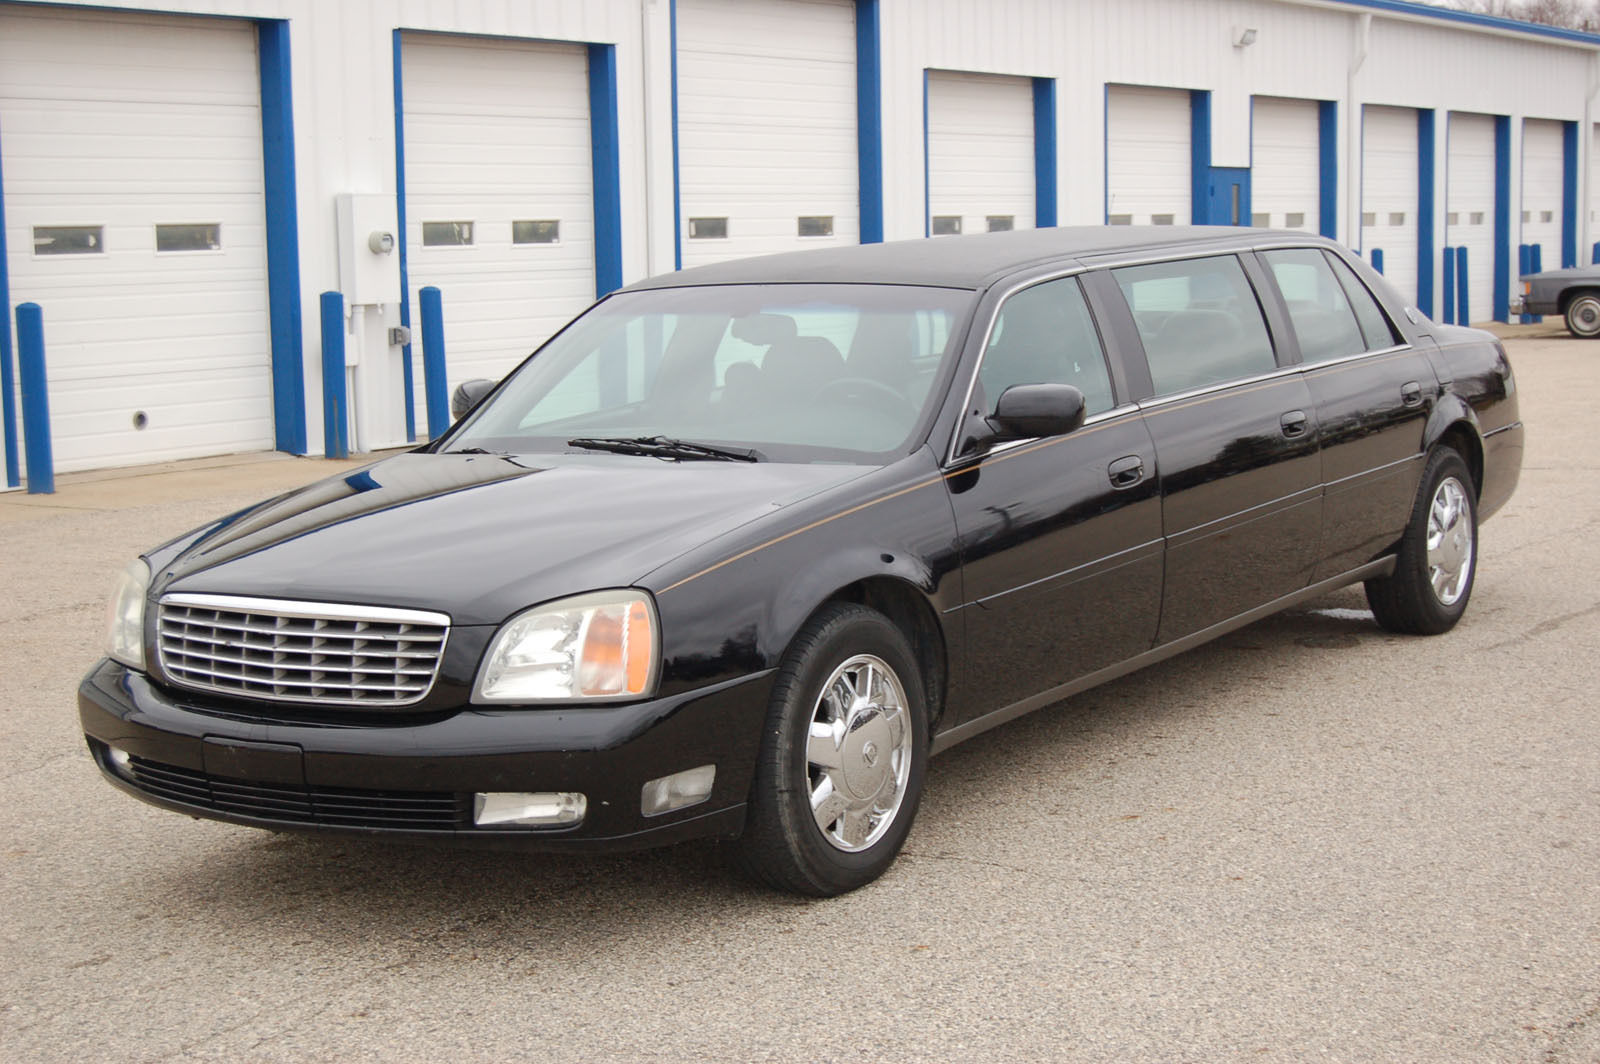 Limo For Sale >> 2002 Cadillac Deville Limousine Six Door Limousine by ...